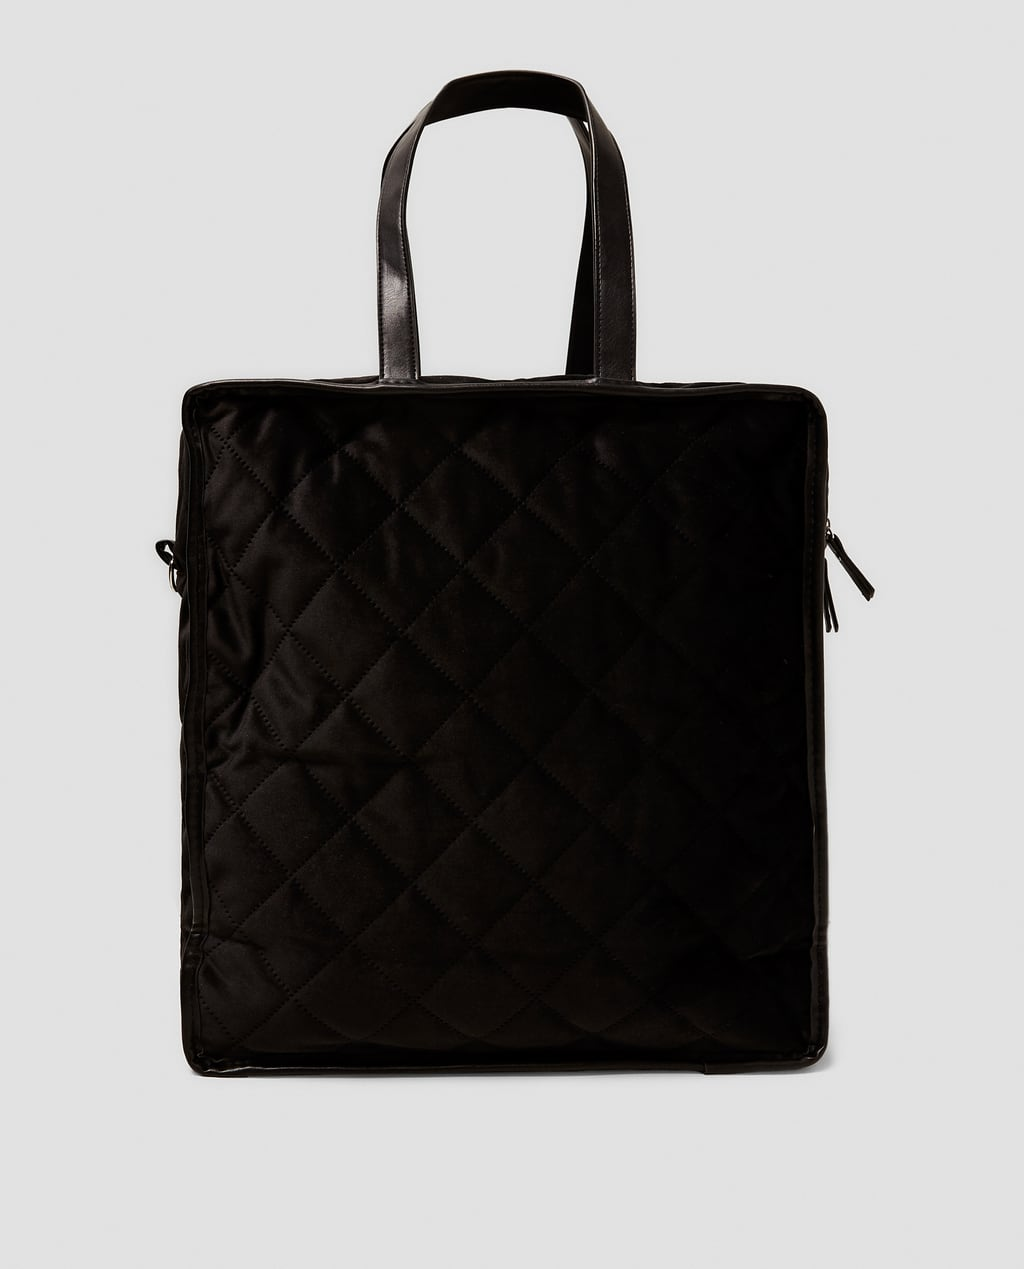 bow quilted tote handtasche vieira bag black totes handle baker quilt ted bags handbags